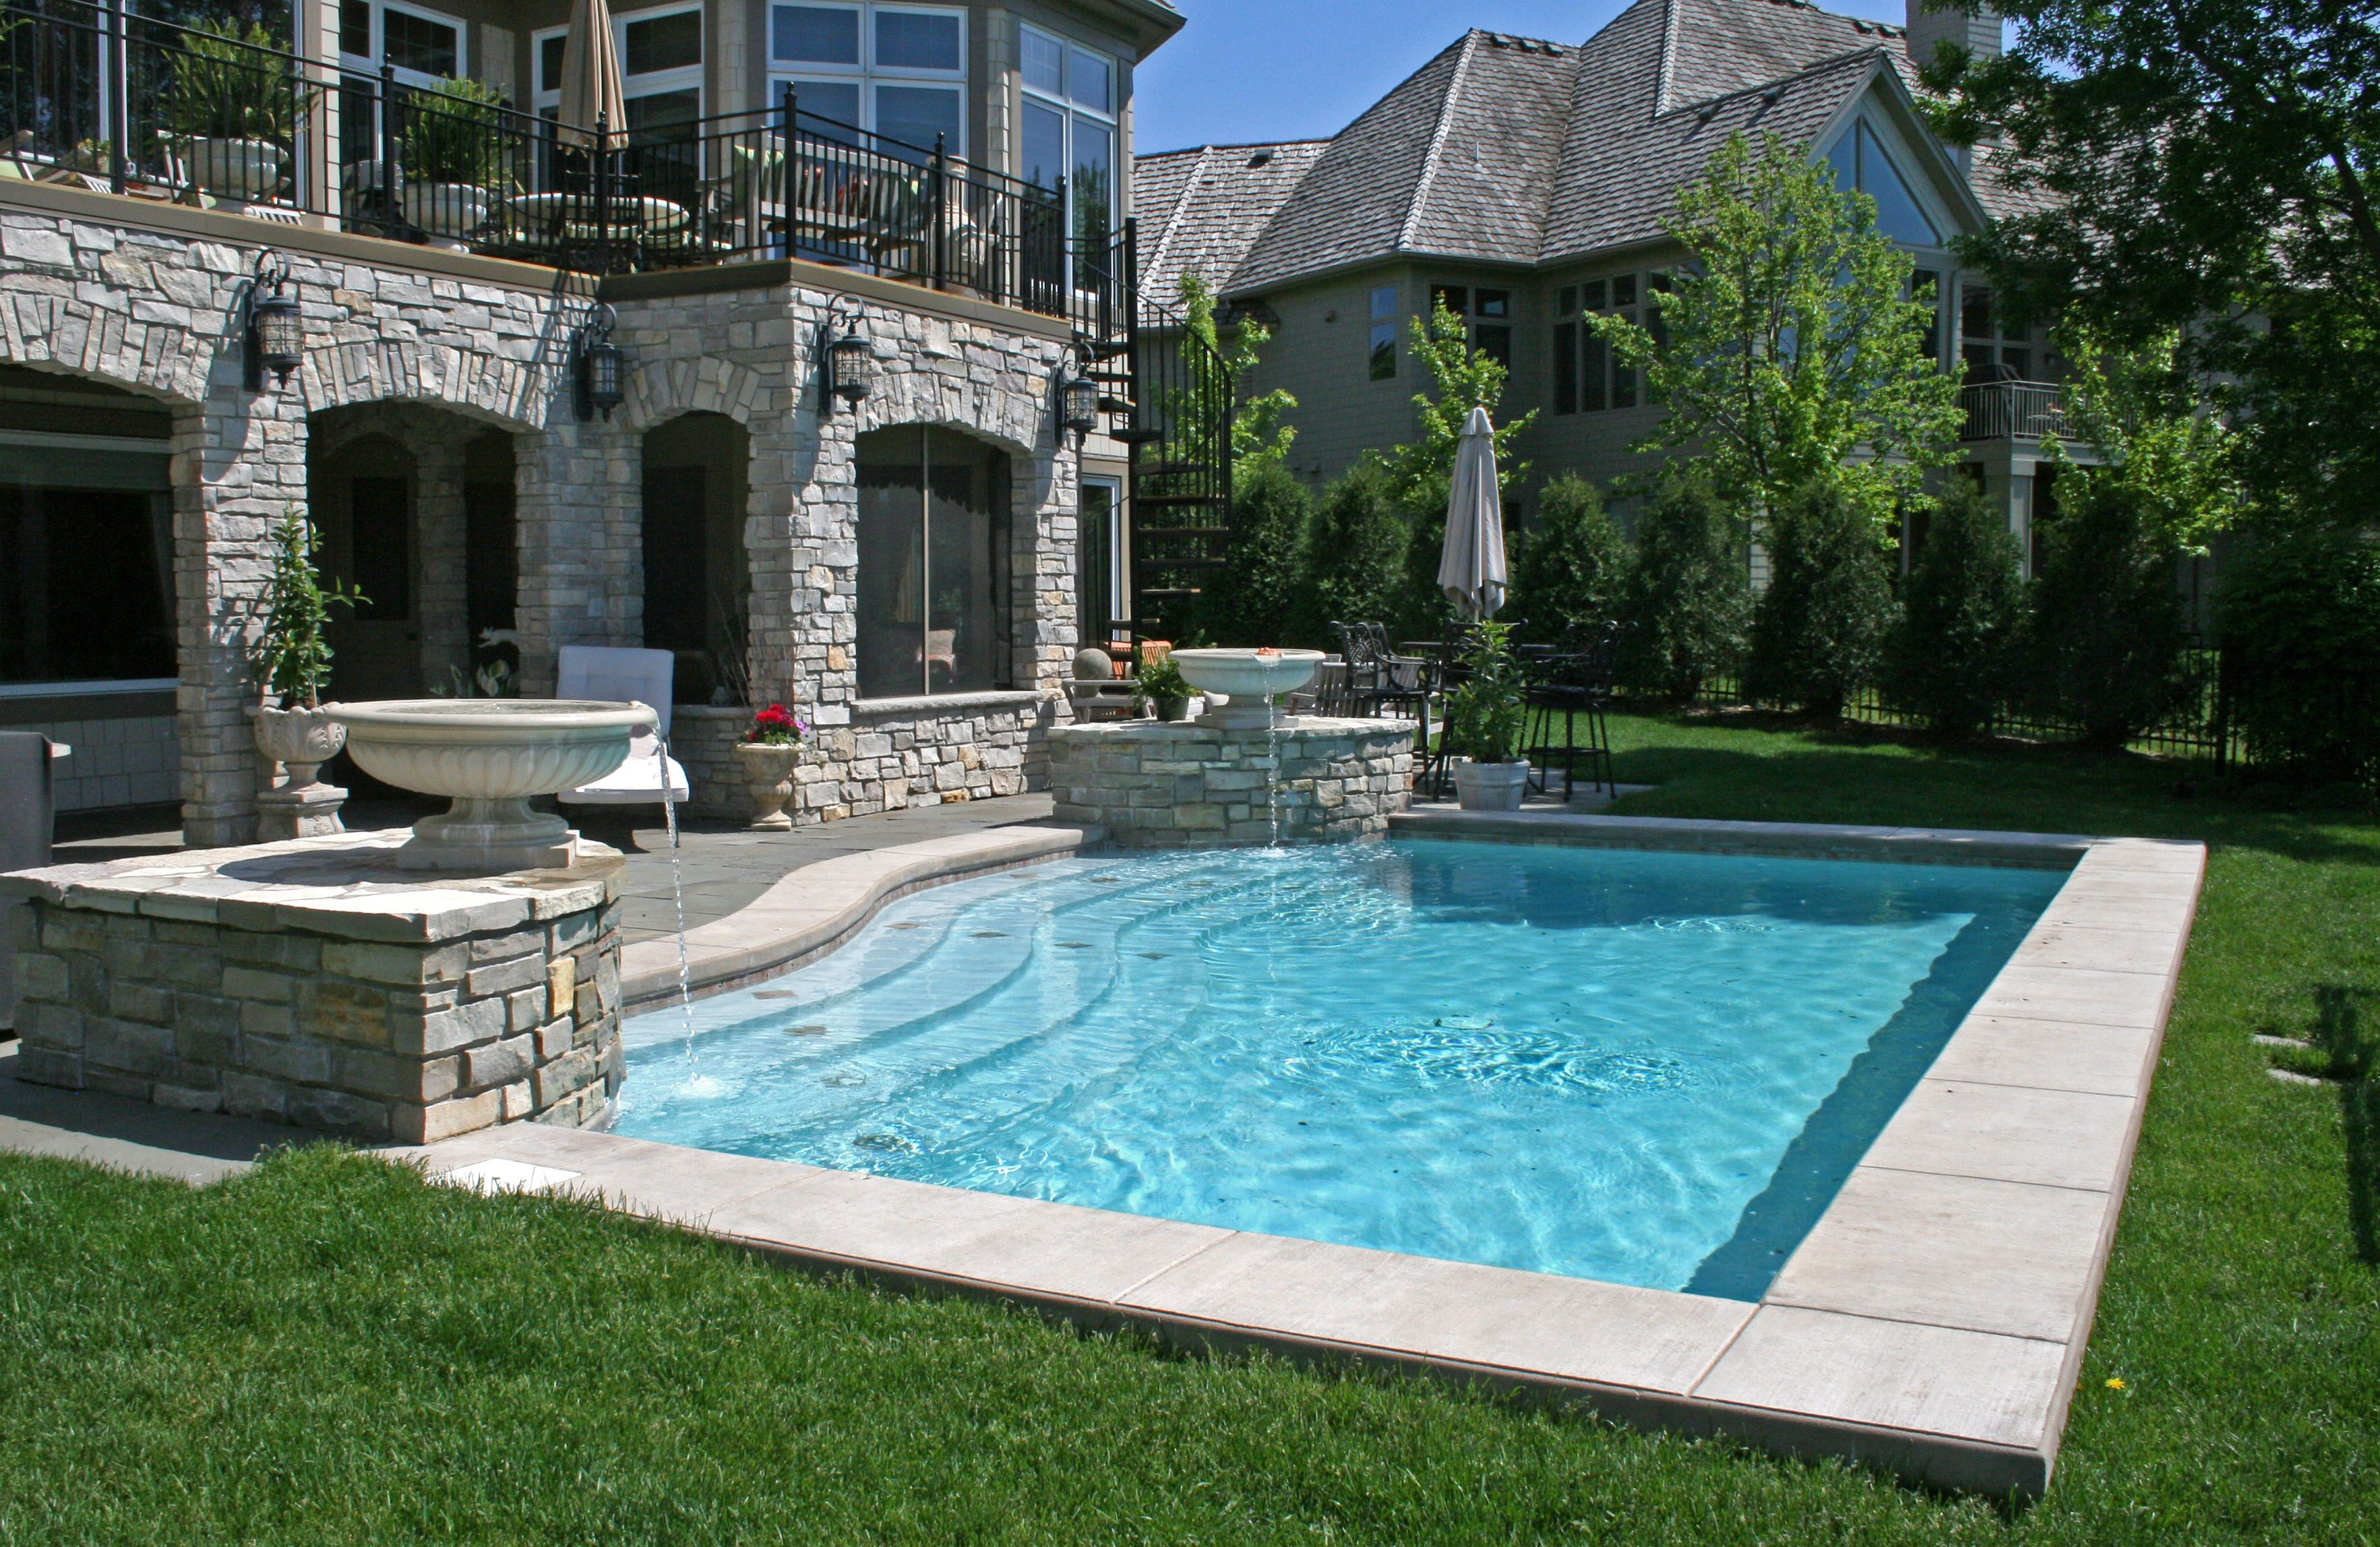 Pool Spa Construction Minneapolis Yardscapes Spa Pool Backyard Pool Swimming Pool Steps